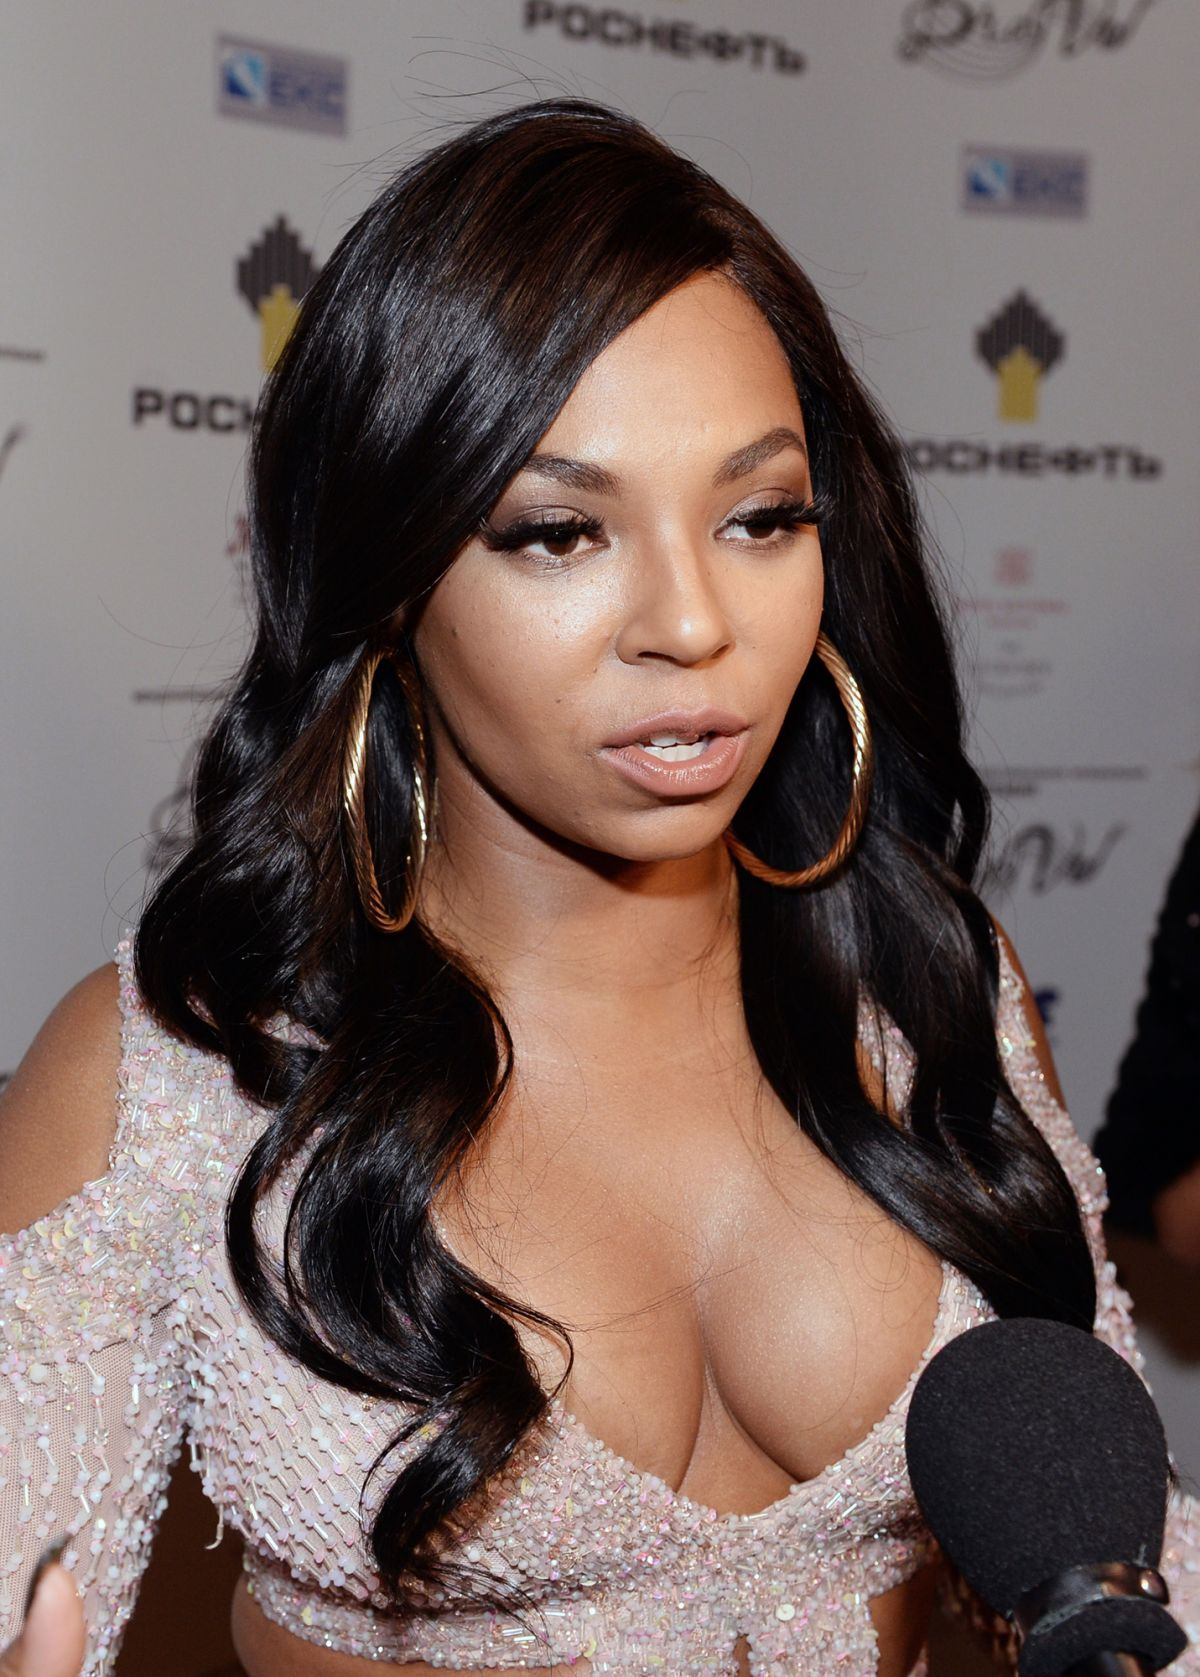 Ashanti nudes (75 photos), Topless, Sideboobs, Feet, swimsuit 2020